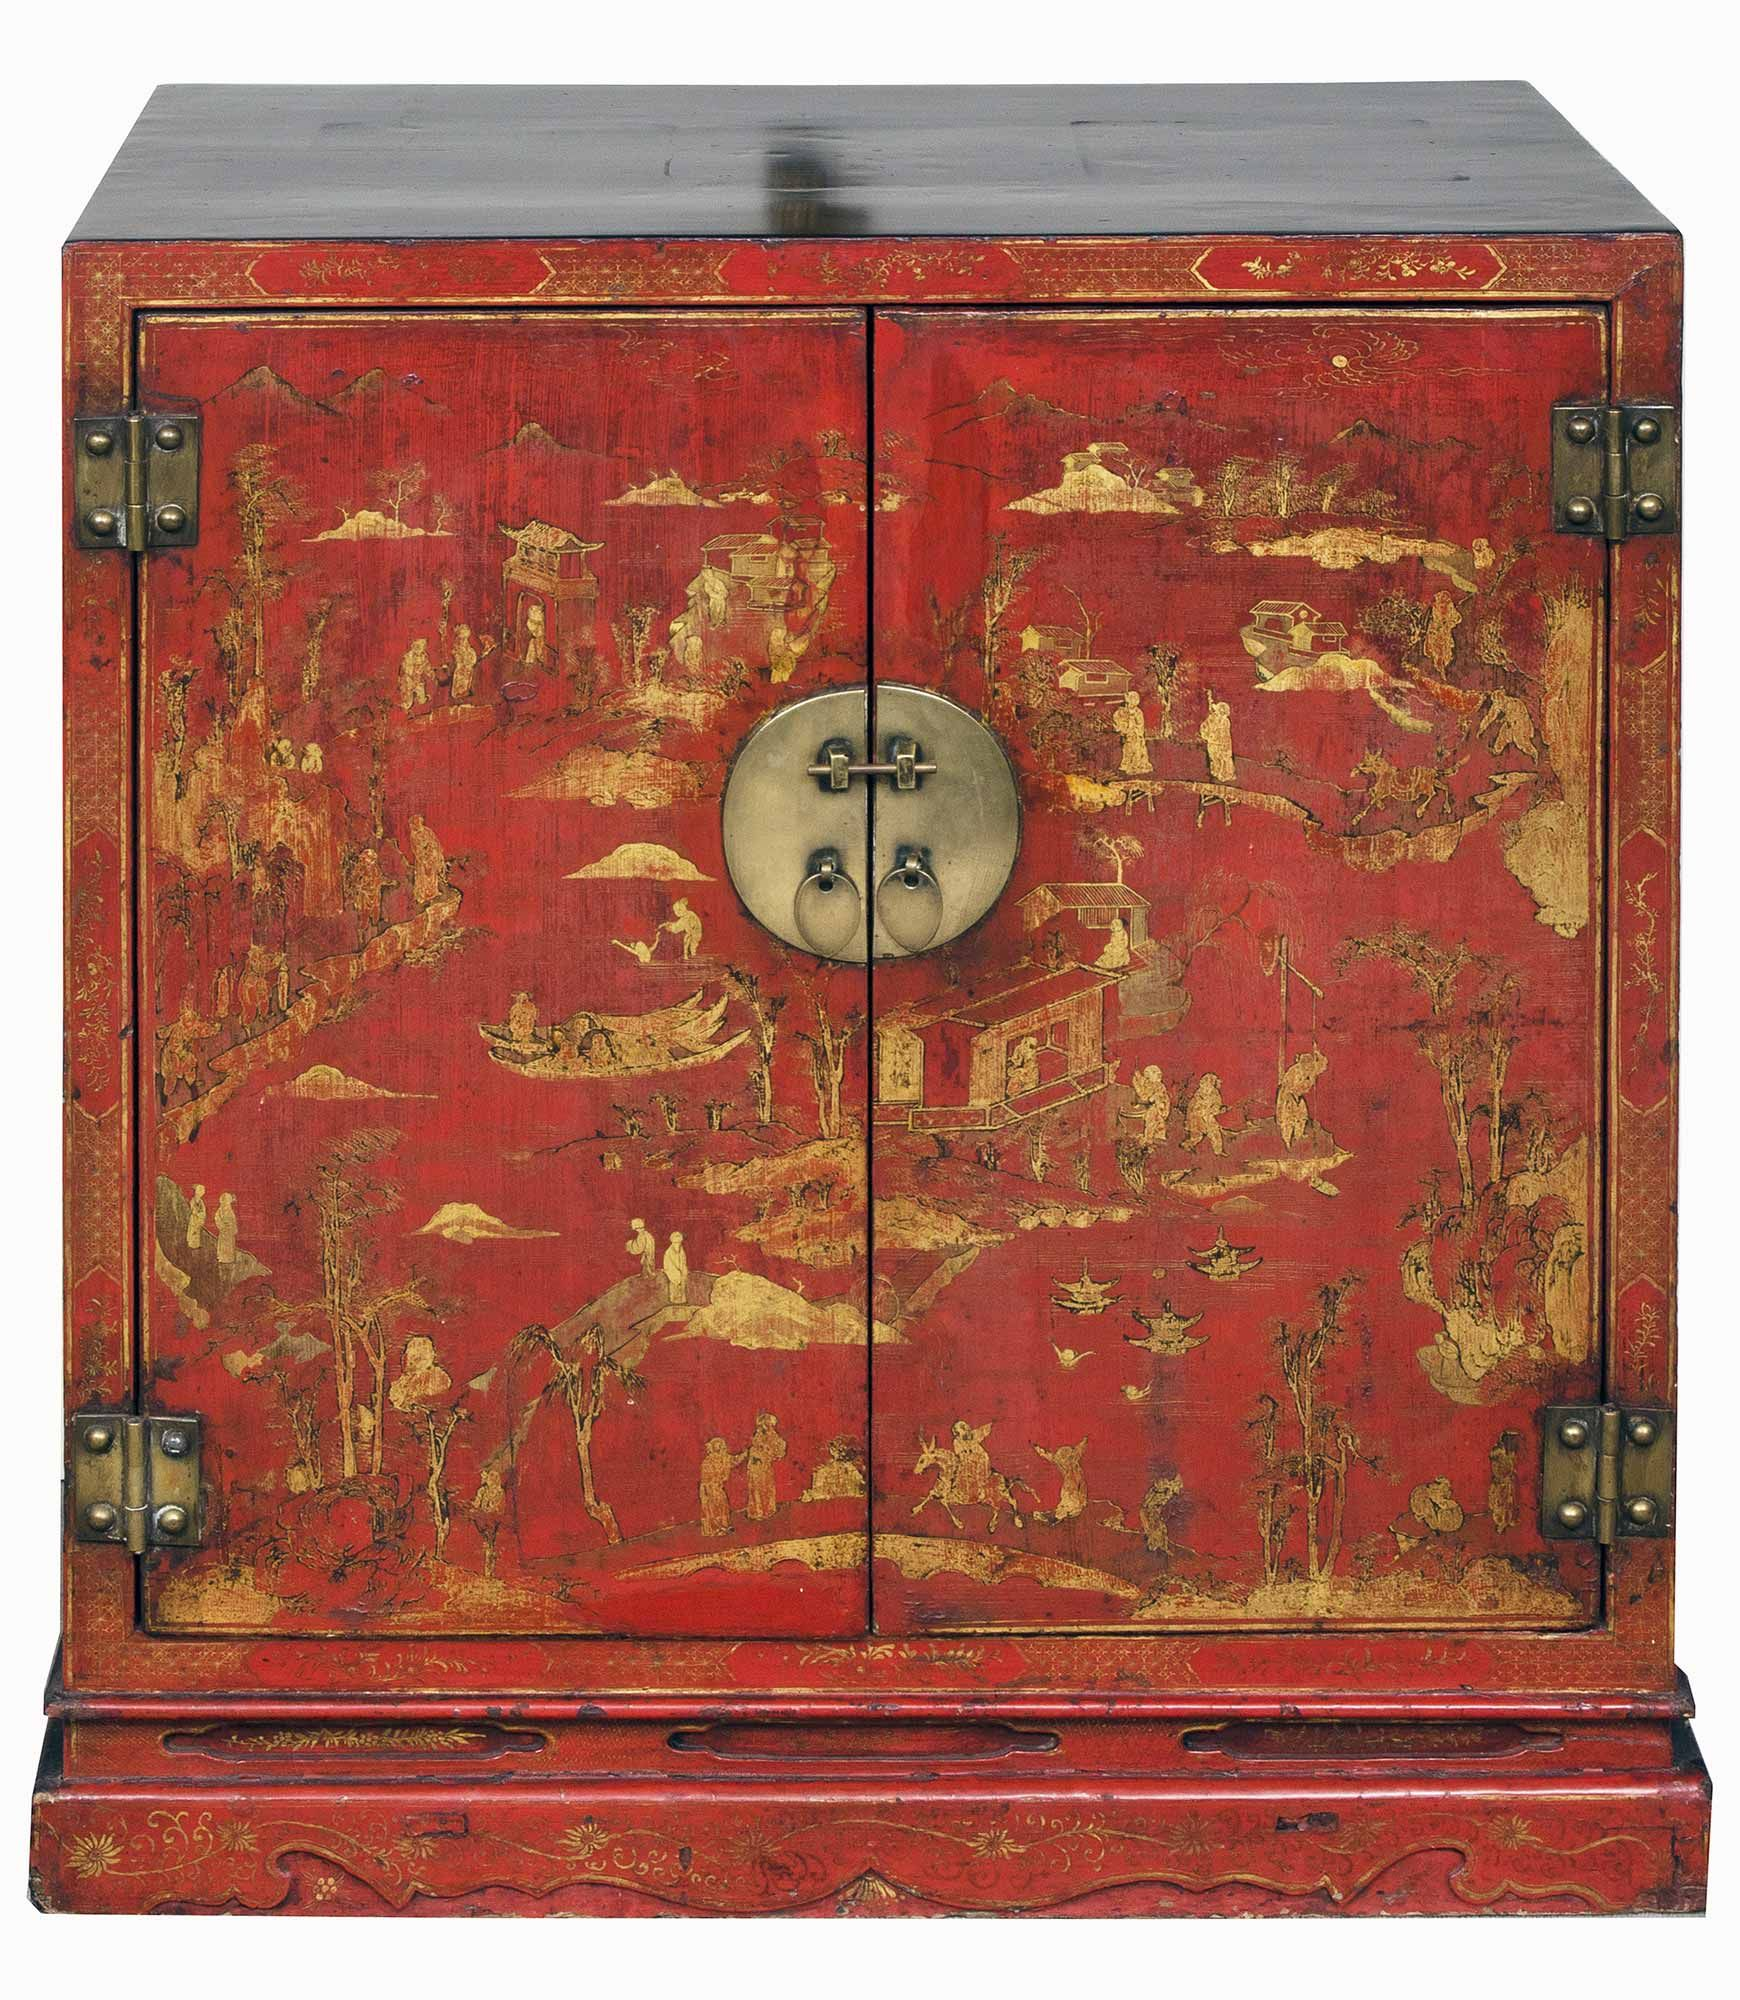 black lacquer paint for furniture. Red Or Black Lacquer Gilt Paintings \u2013 Determining The Old From New On Chinese Gold Painted Furniture. Paint For Furniture I